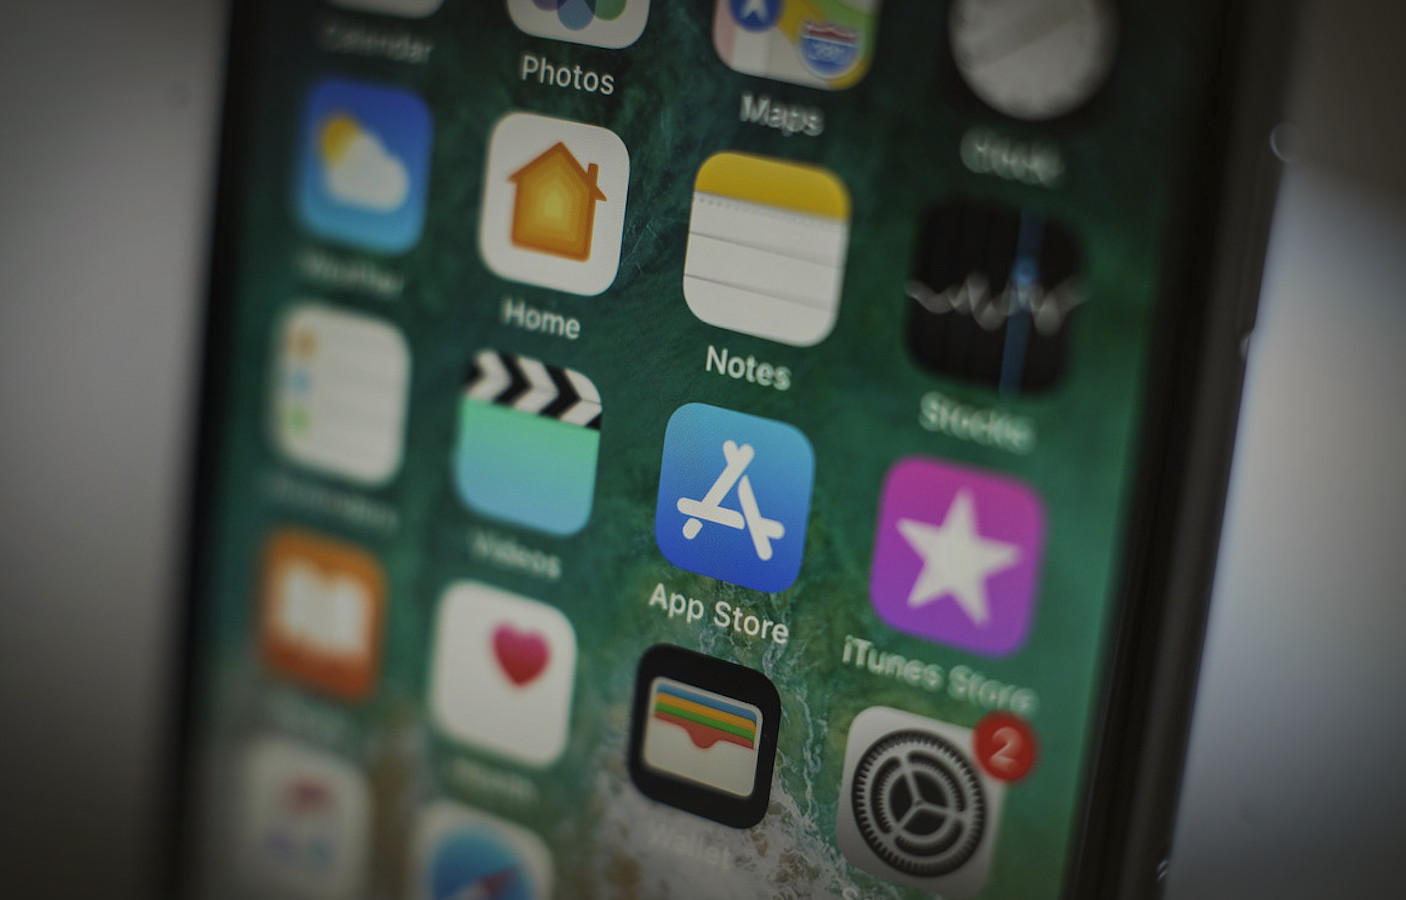 spyware on an iphone